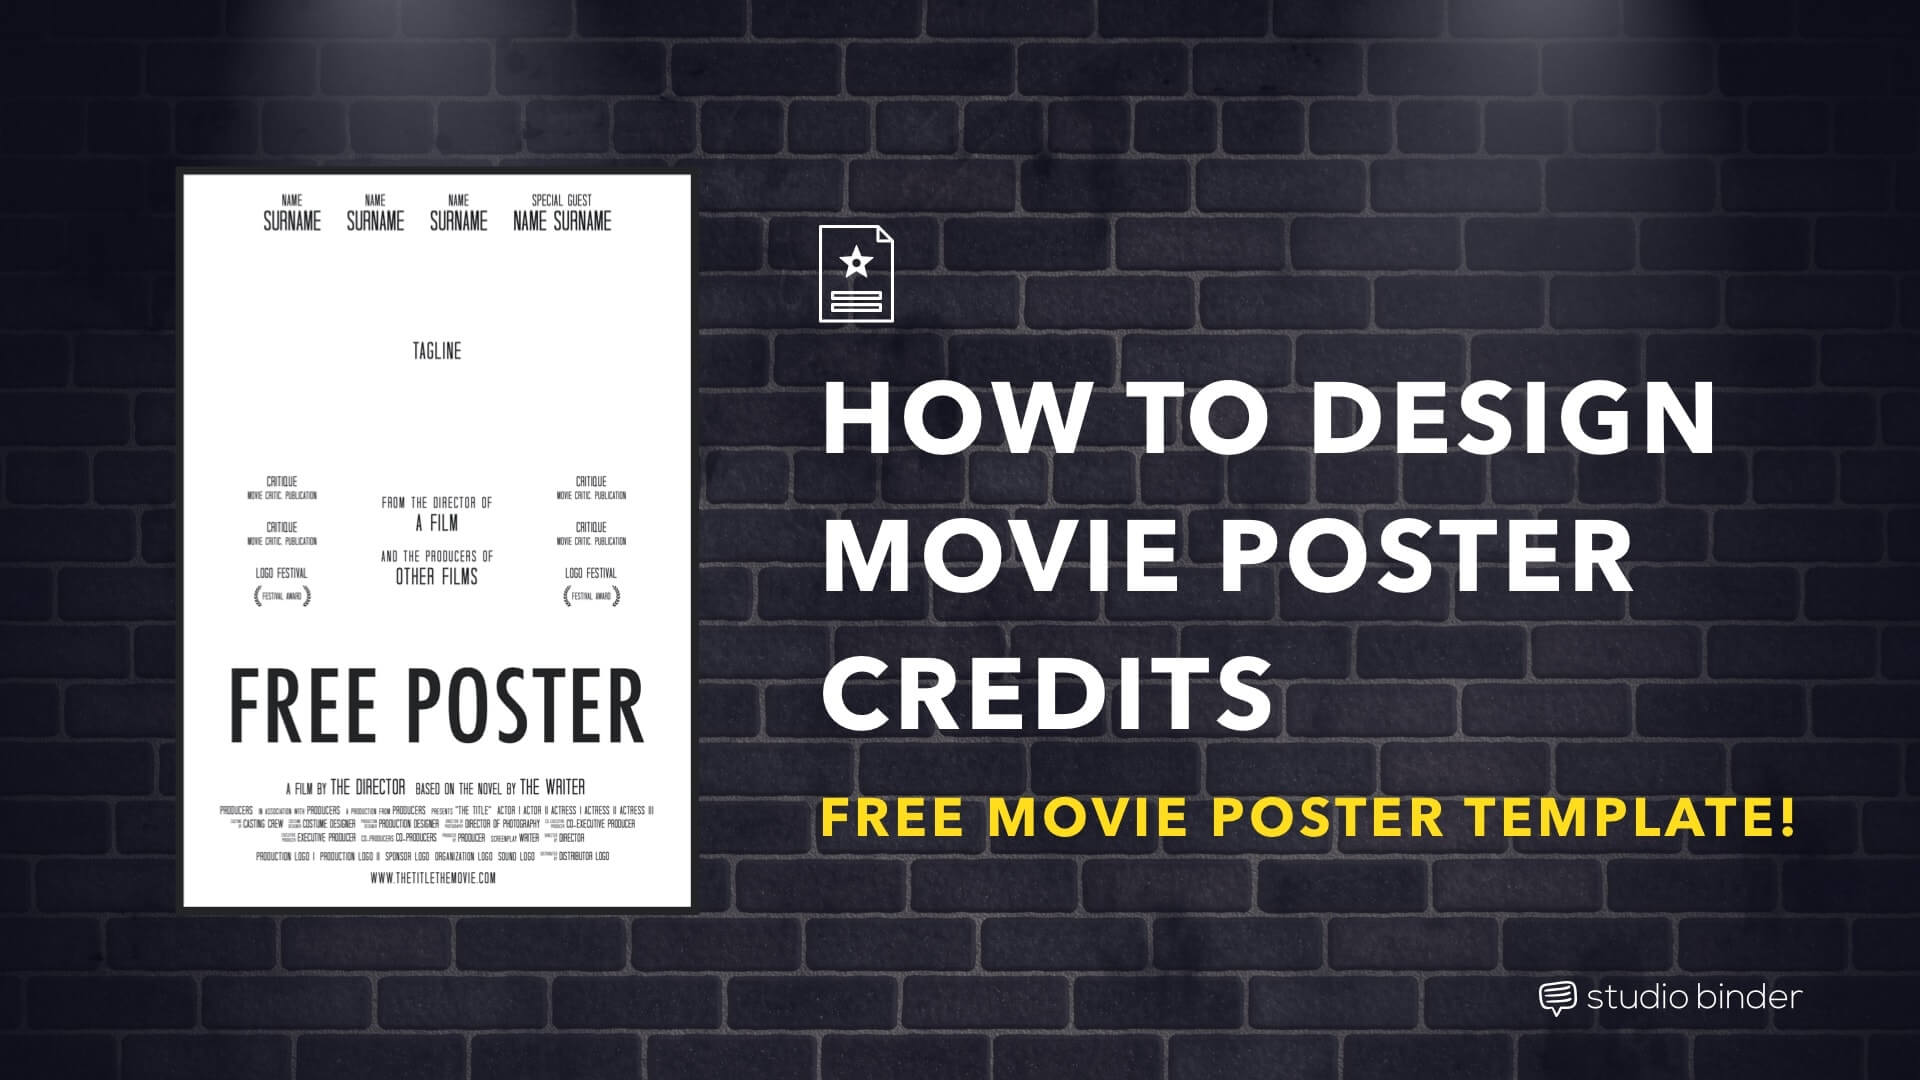 How To Make A Movie Poster Free Credits Template